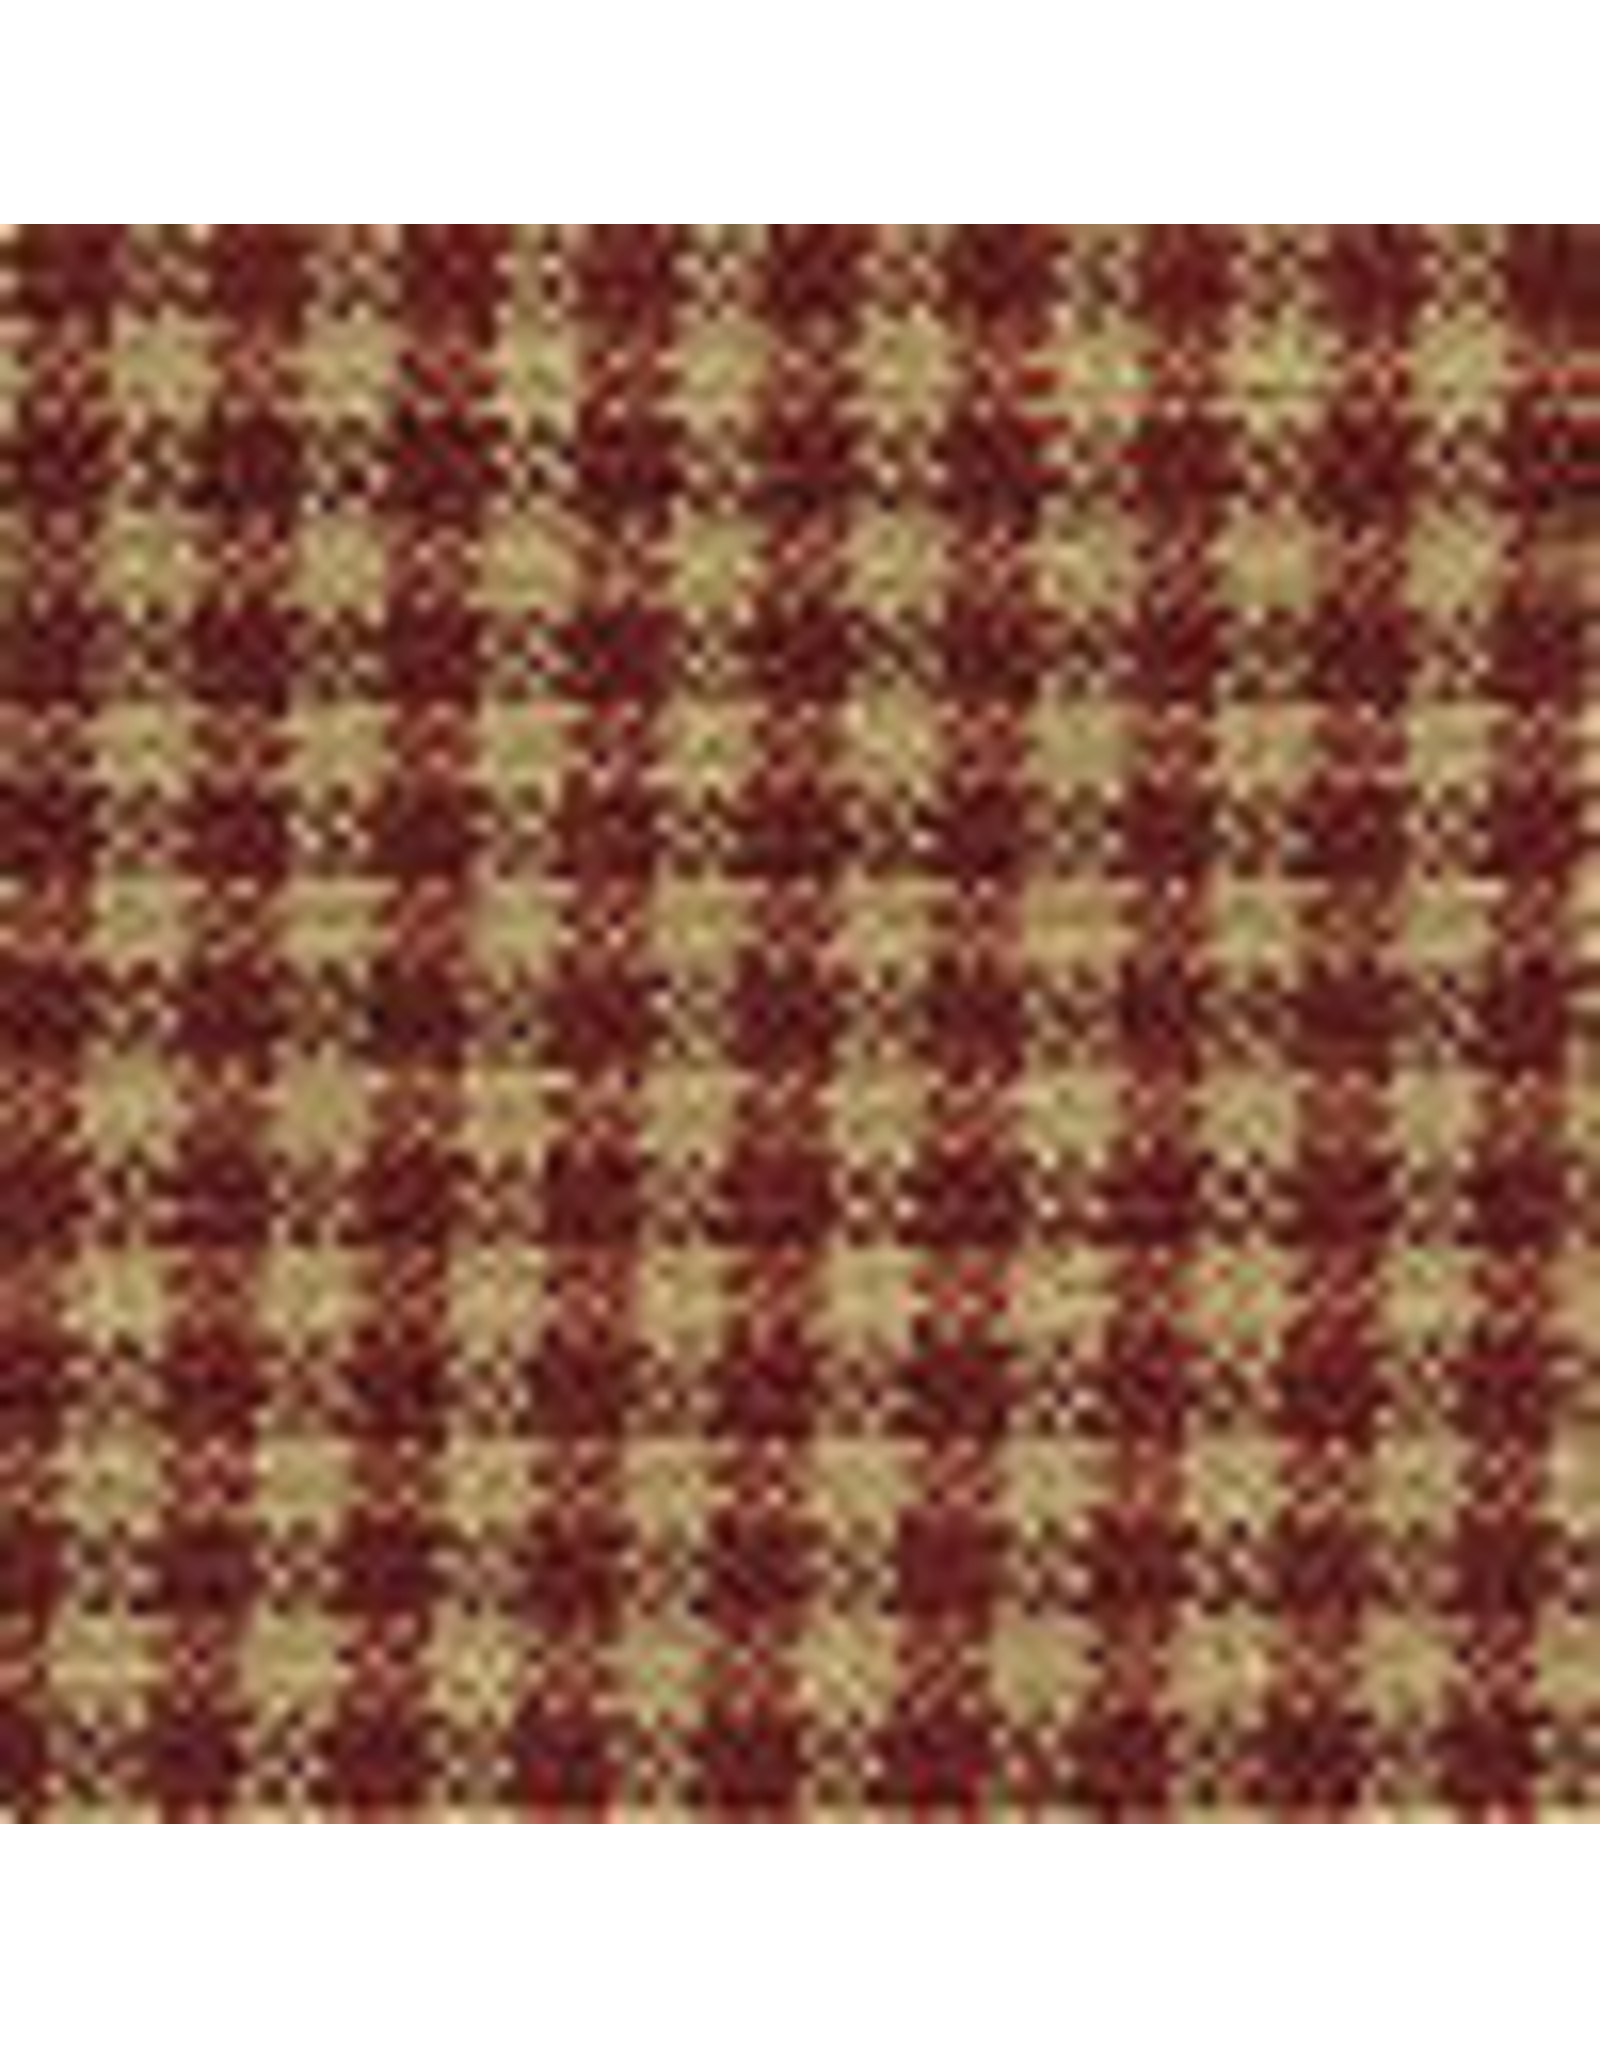 Yd. Red and Tan Mini Check Fabric #33